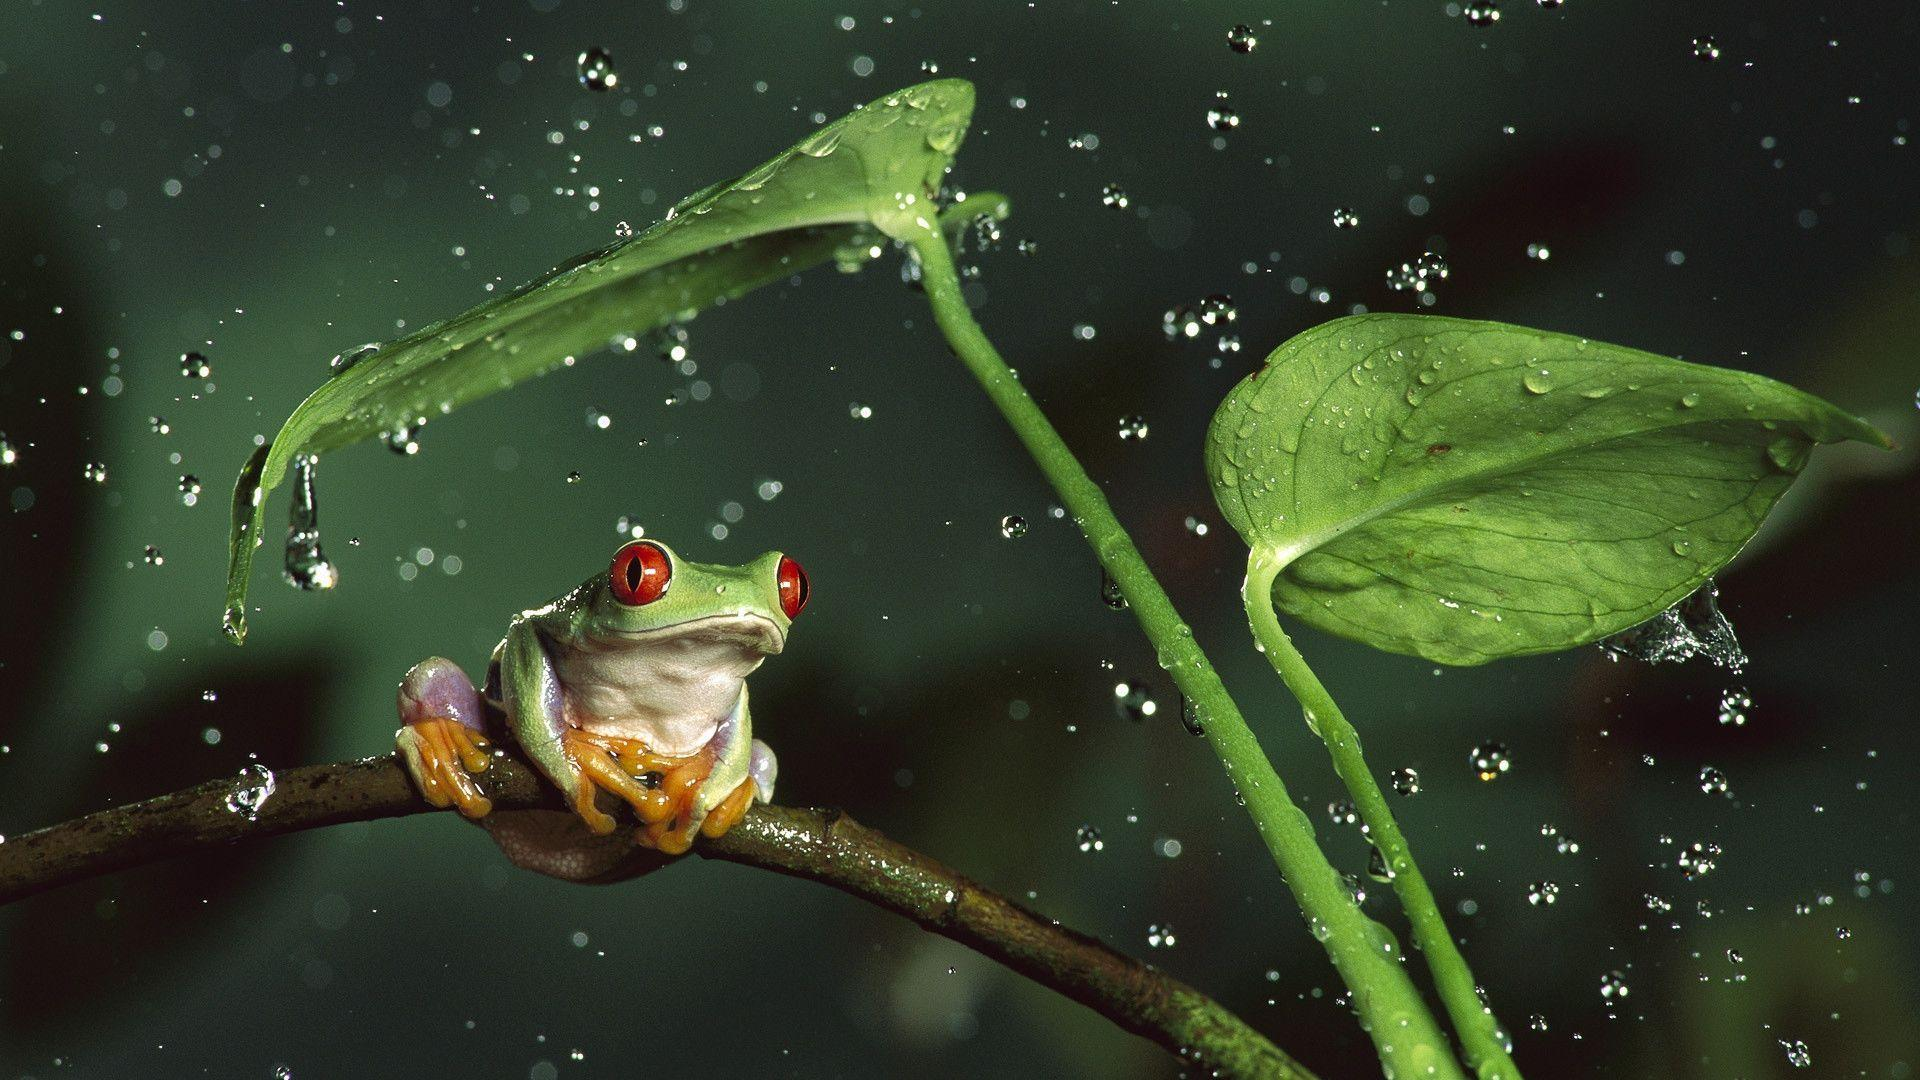 Frog and leaves desktop wallpapers 800x600, Frog and leaves